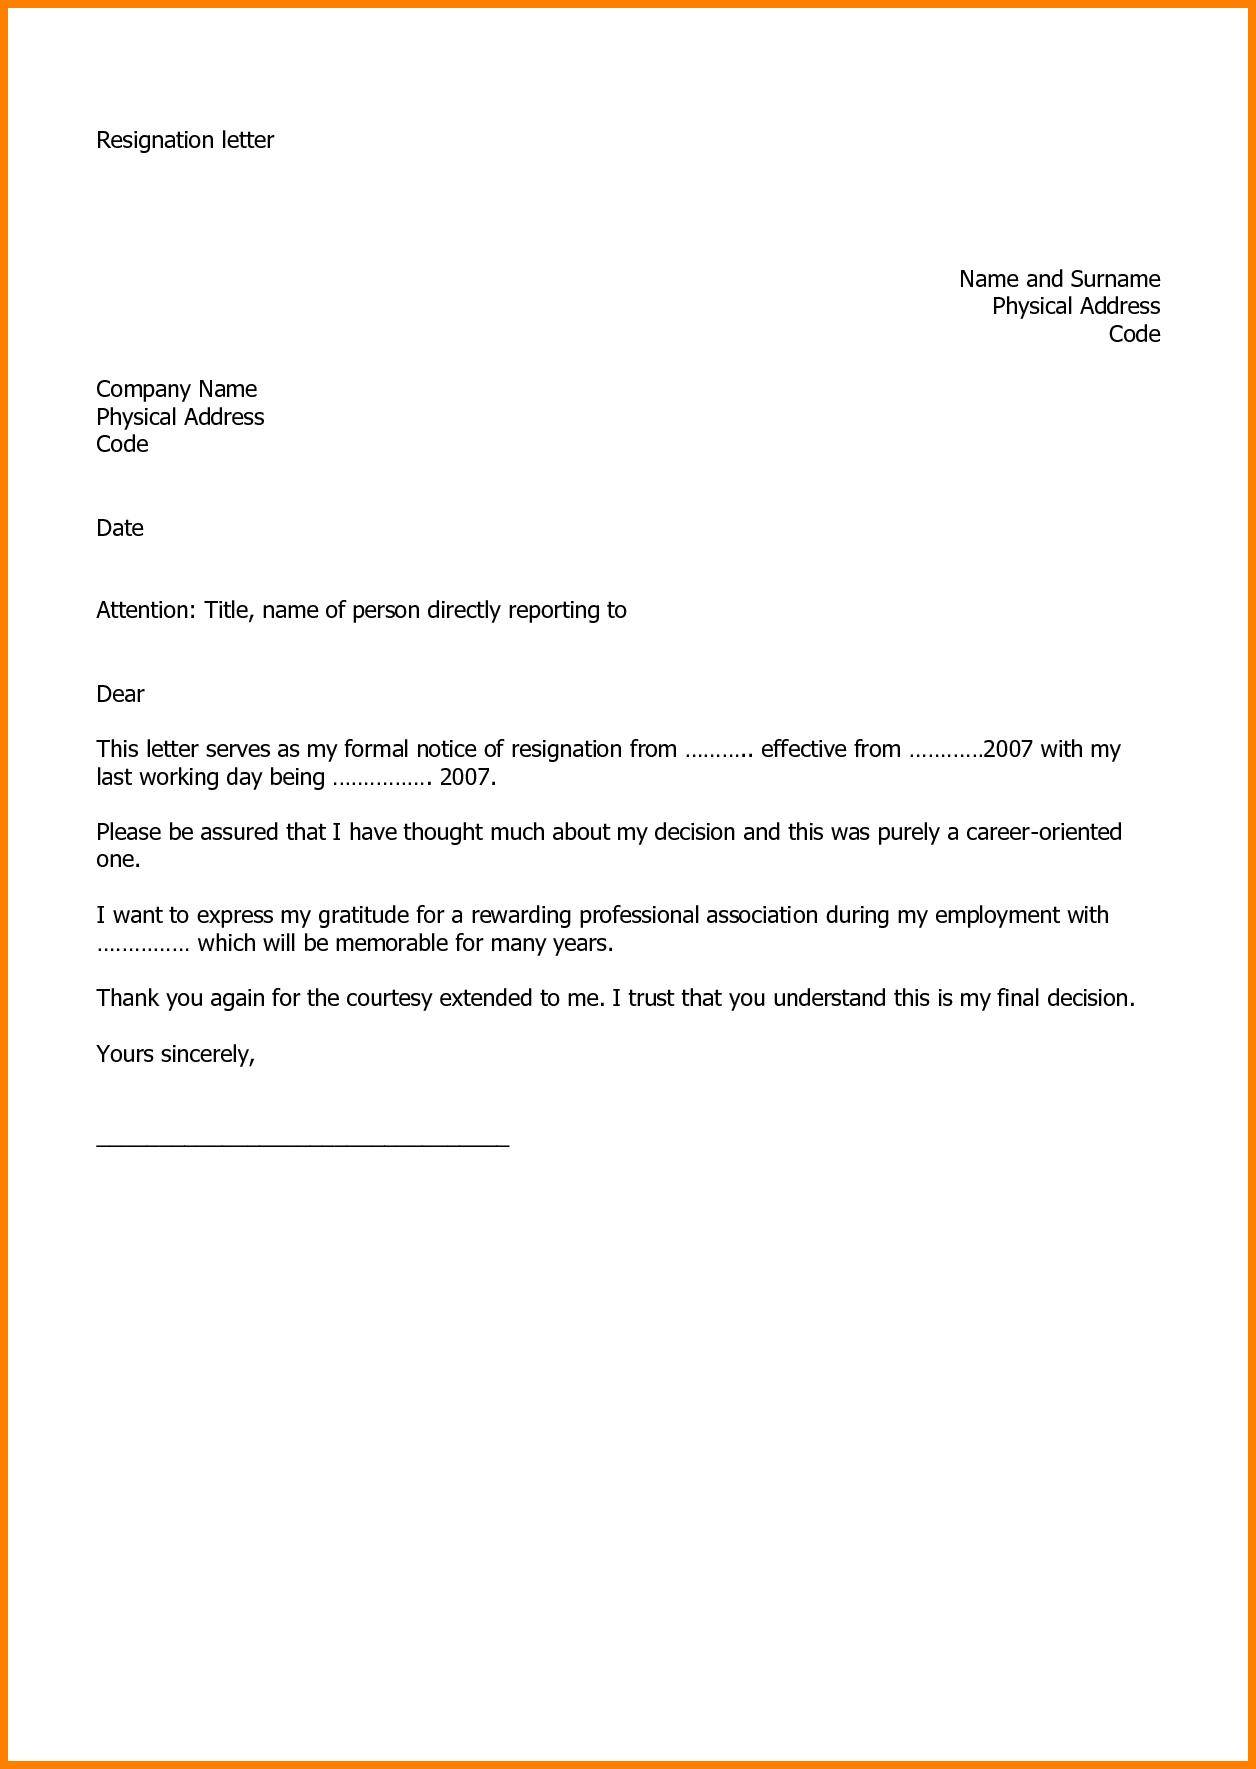 Free Resignation Letter Template Microsoft Word Download - Templates ...